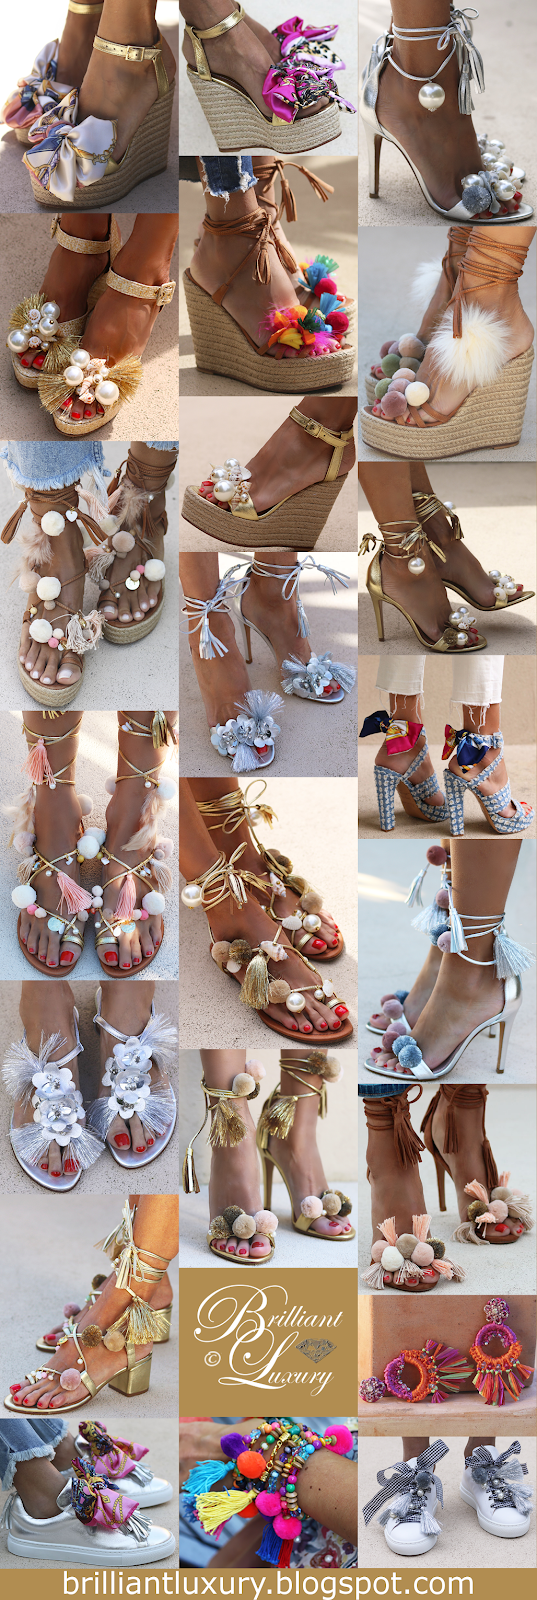 Brilliant Luxury ♦ Alameda Turquesa ~ fab shoes and more